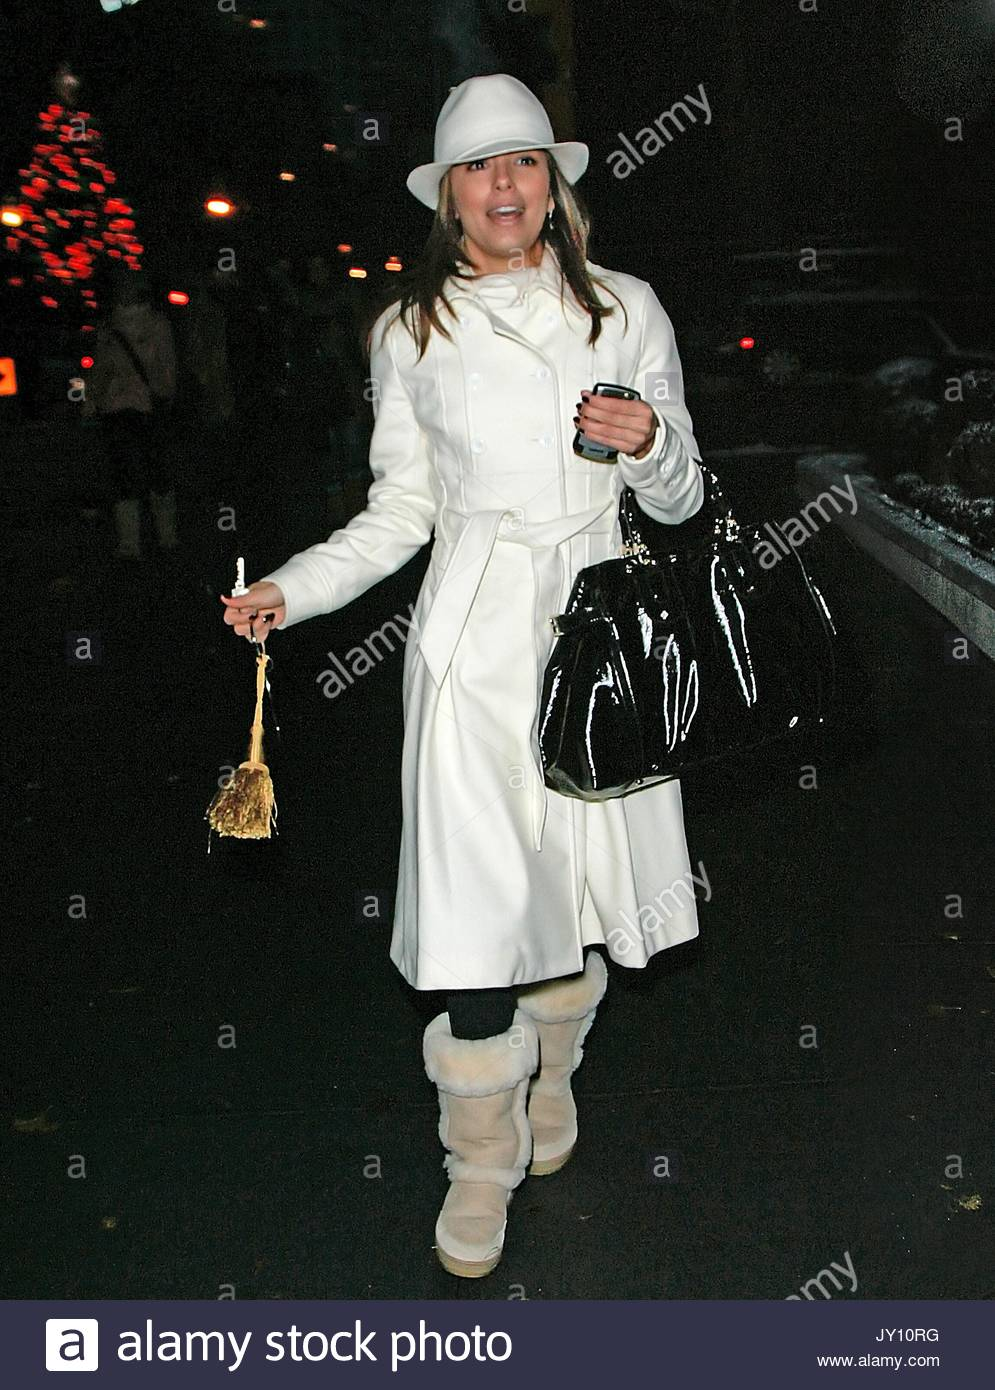 A Belted Trench Coat Stock Photos & A Belted Trench Coat ...